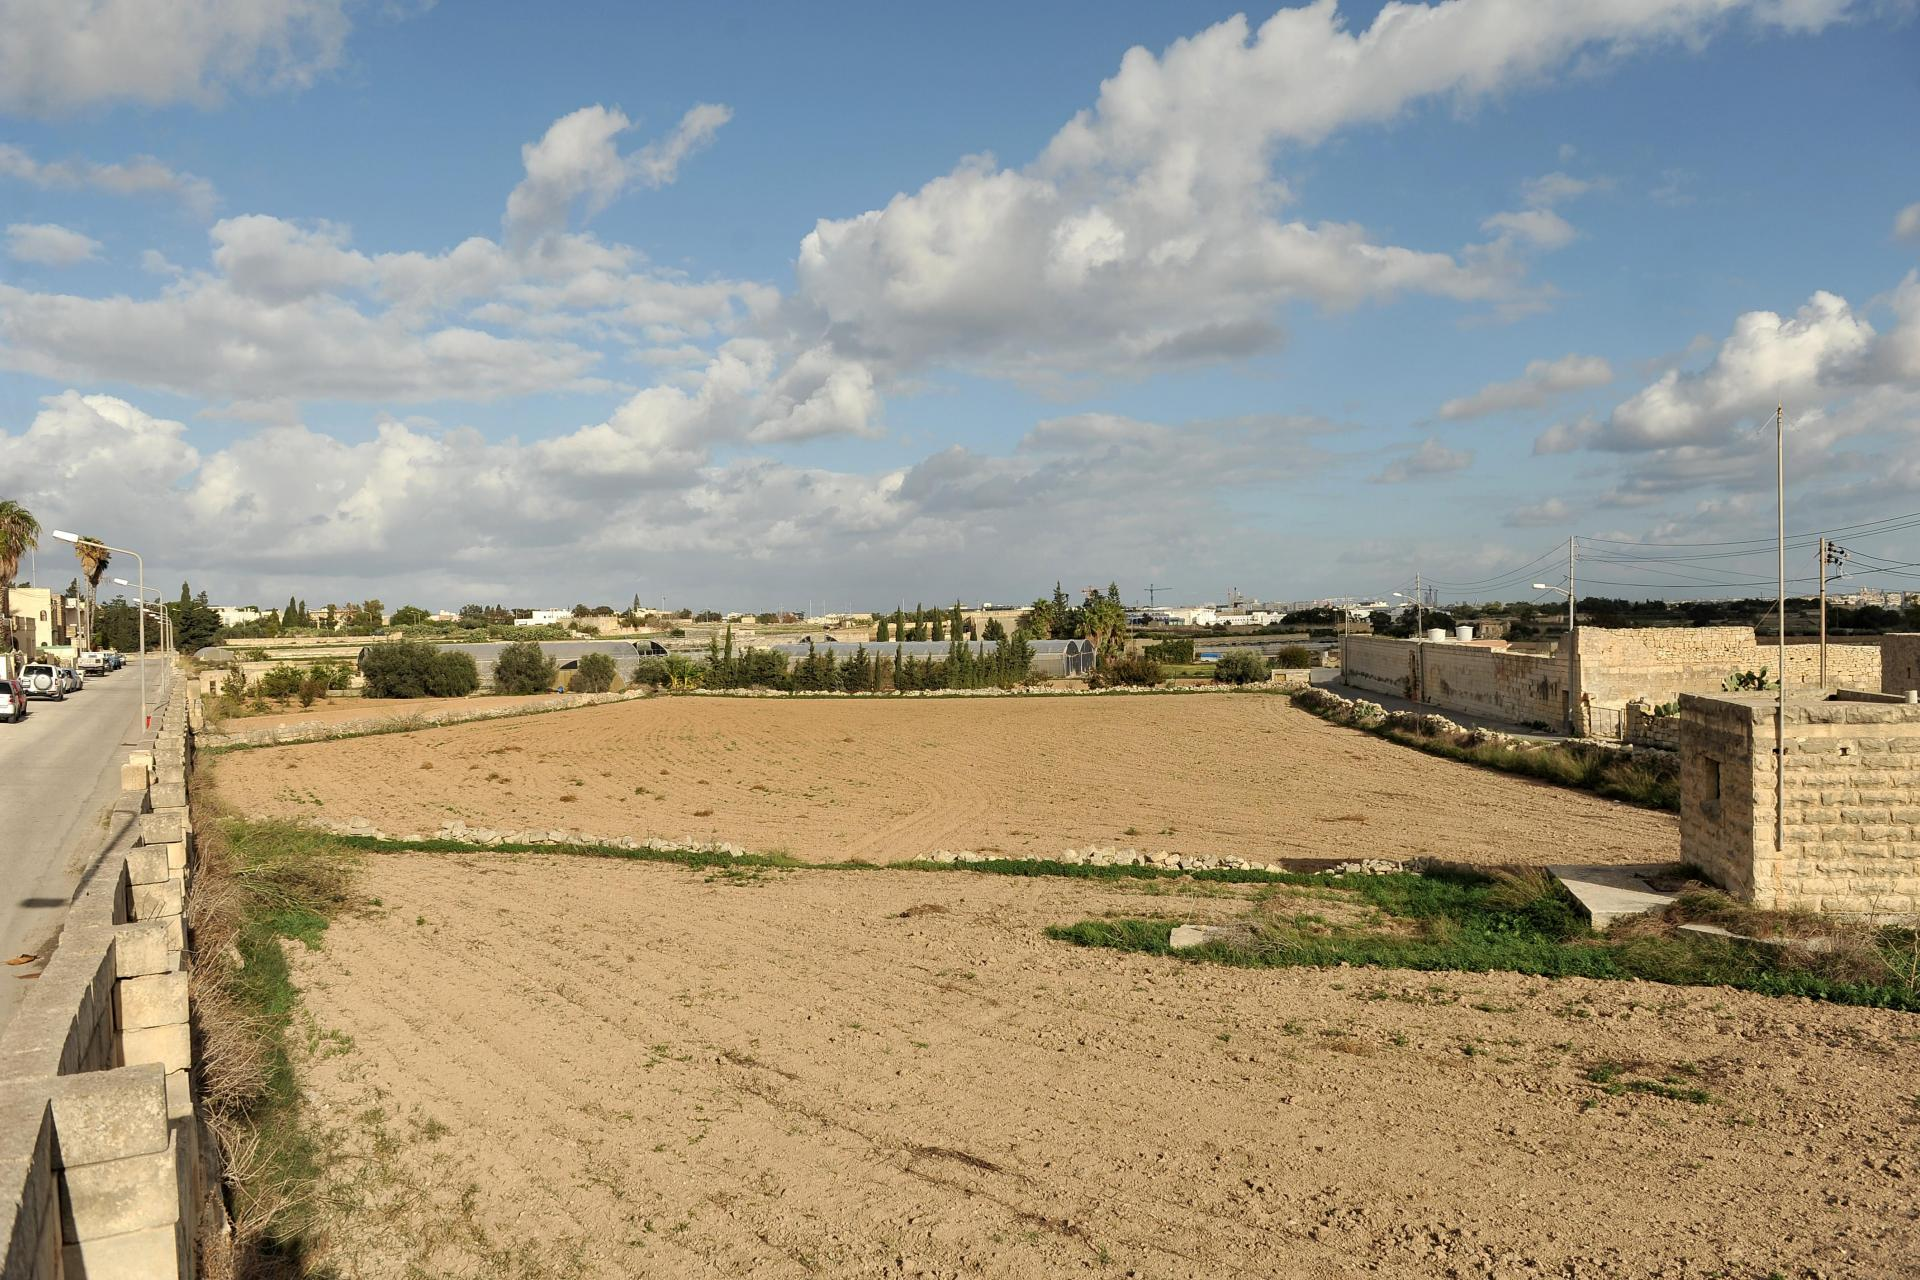 The approved Central Link will take up less agricultural land for a new bypass outside Attard - but will not spare 20 football pitches. Photo: Chris Sant Fournier.